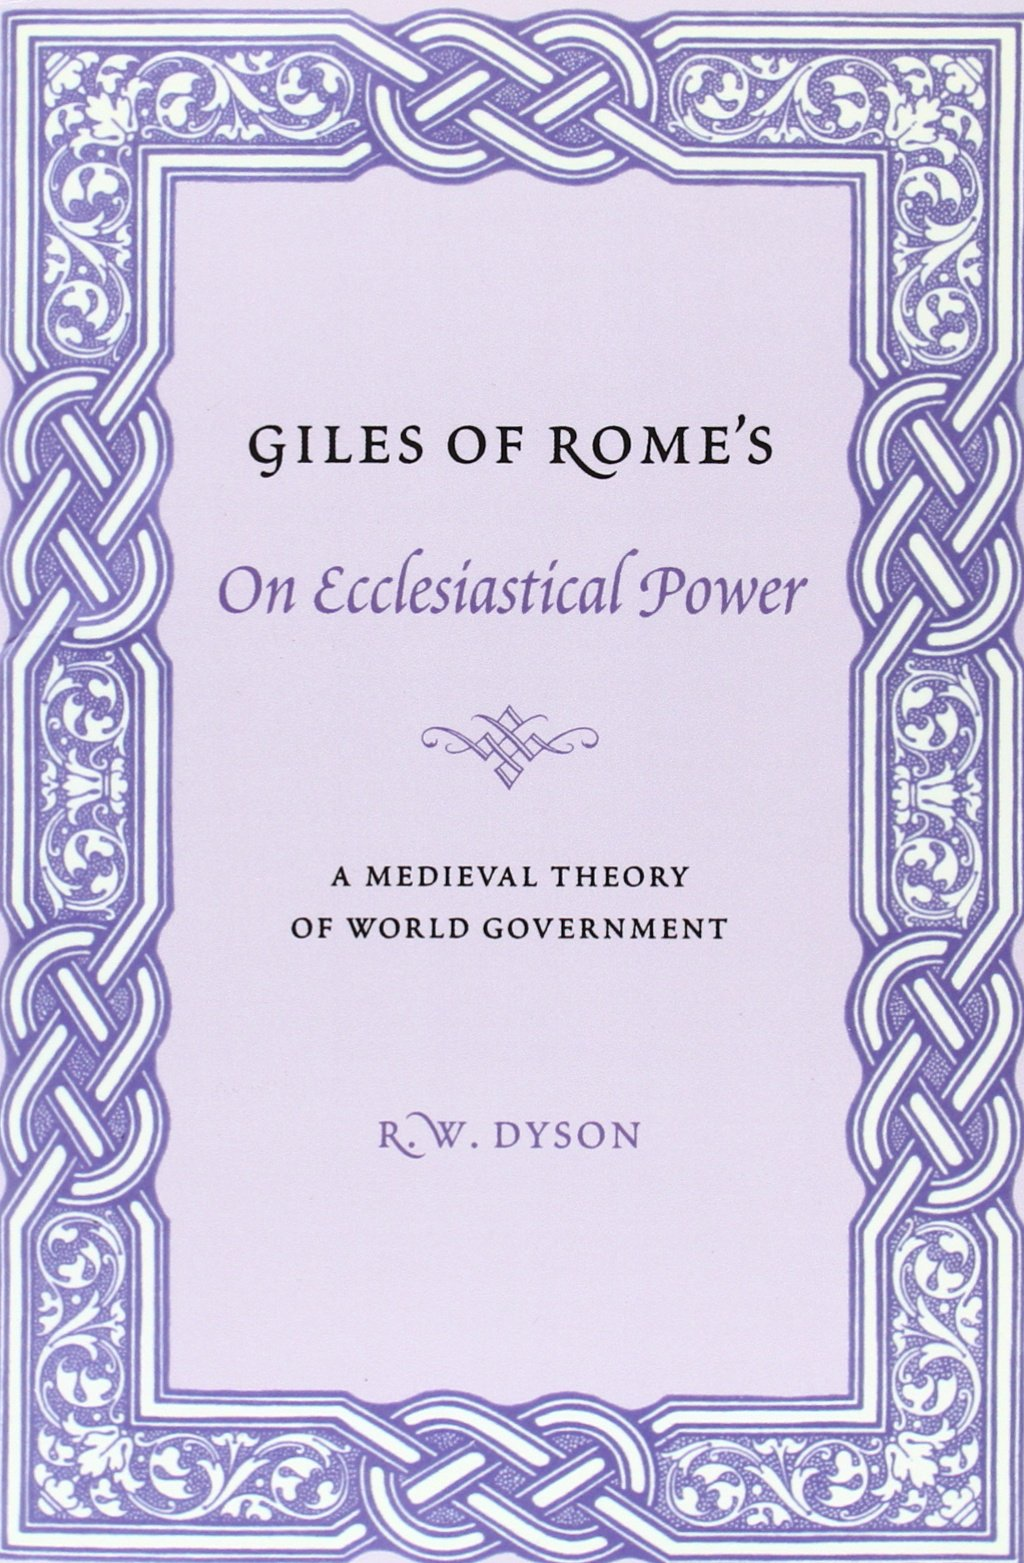 Giles of Rome's On Ecclesiastical Power: A Medieval Theory of World Government (Records of Western Civilization Series)